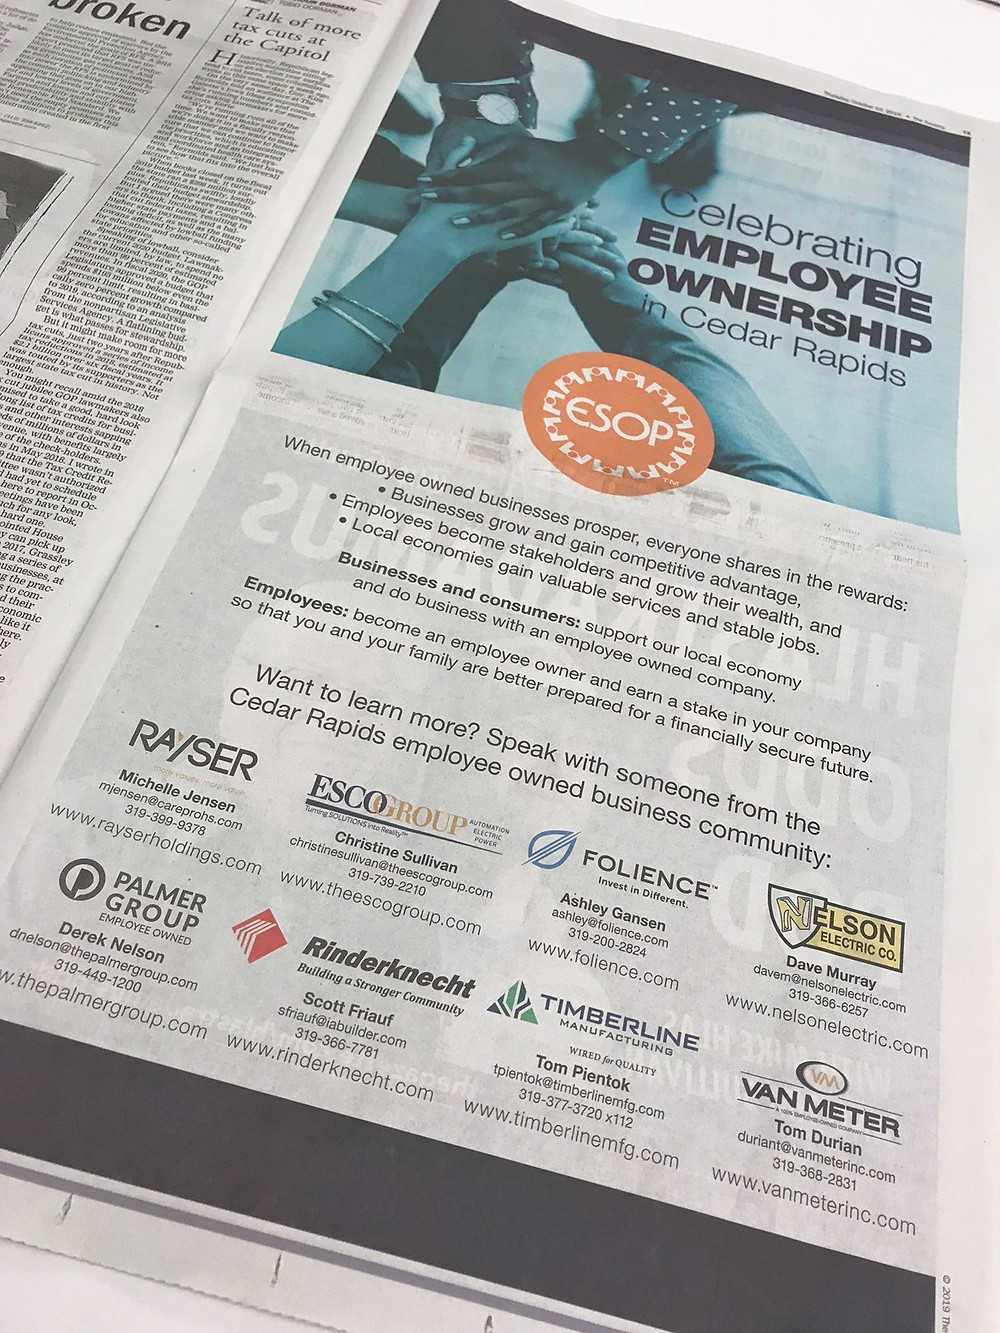 """Celebrating Employee Ownership in Cedar Rapids"" Published in The Gazette; Source: Nelson Electric's Facebook Page"